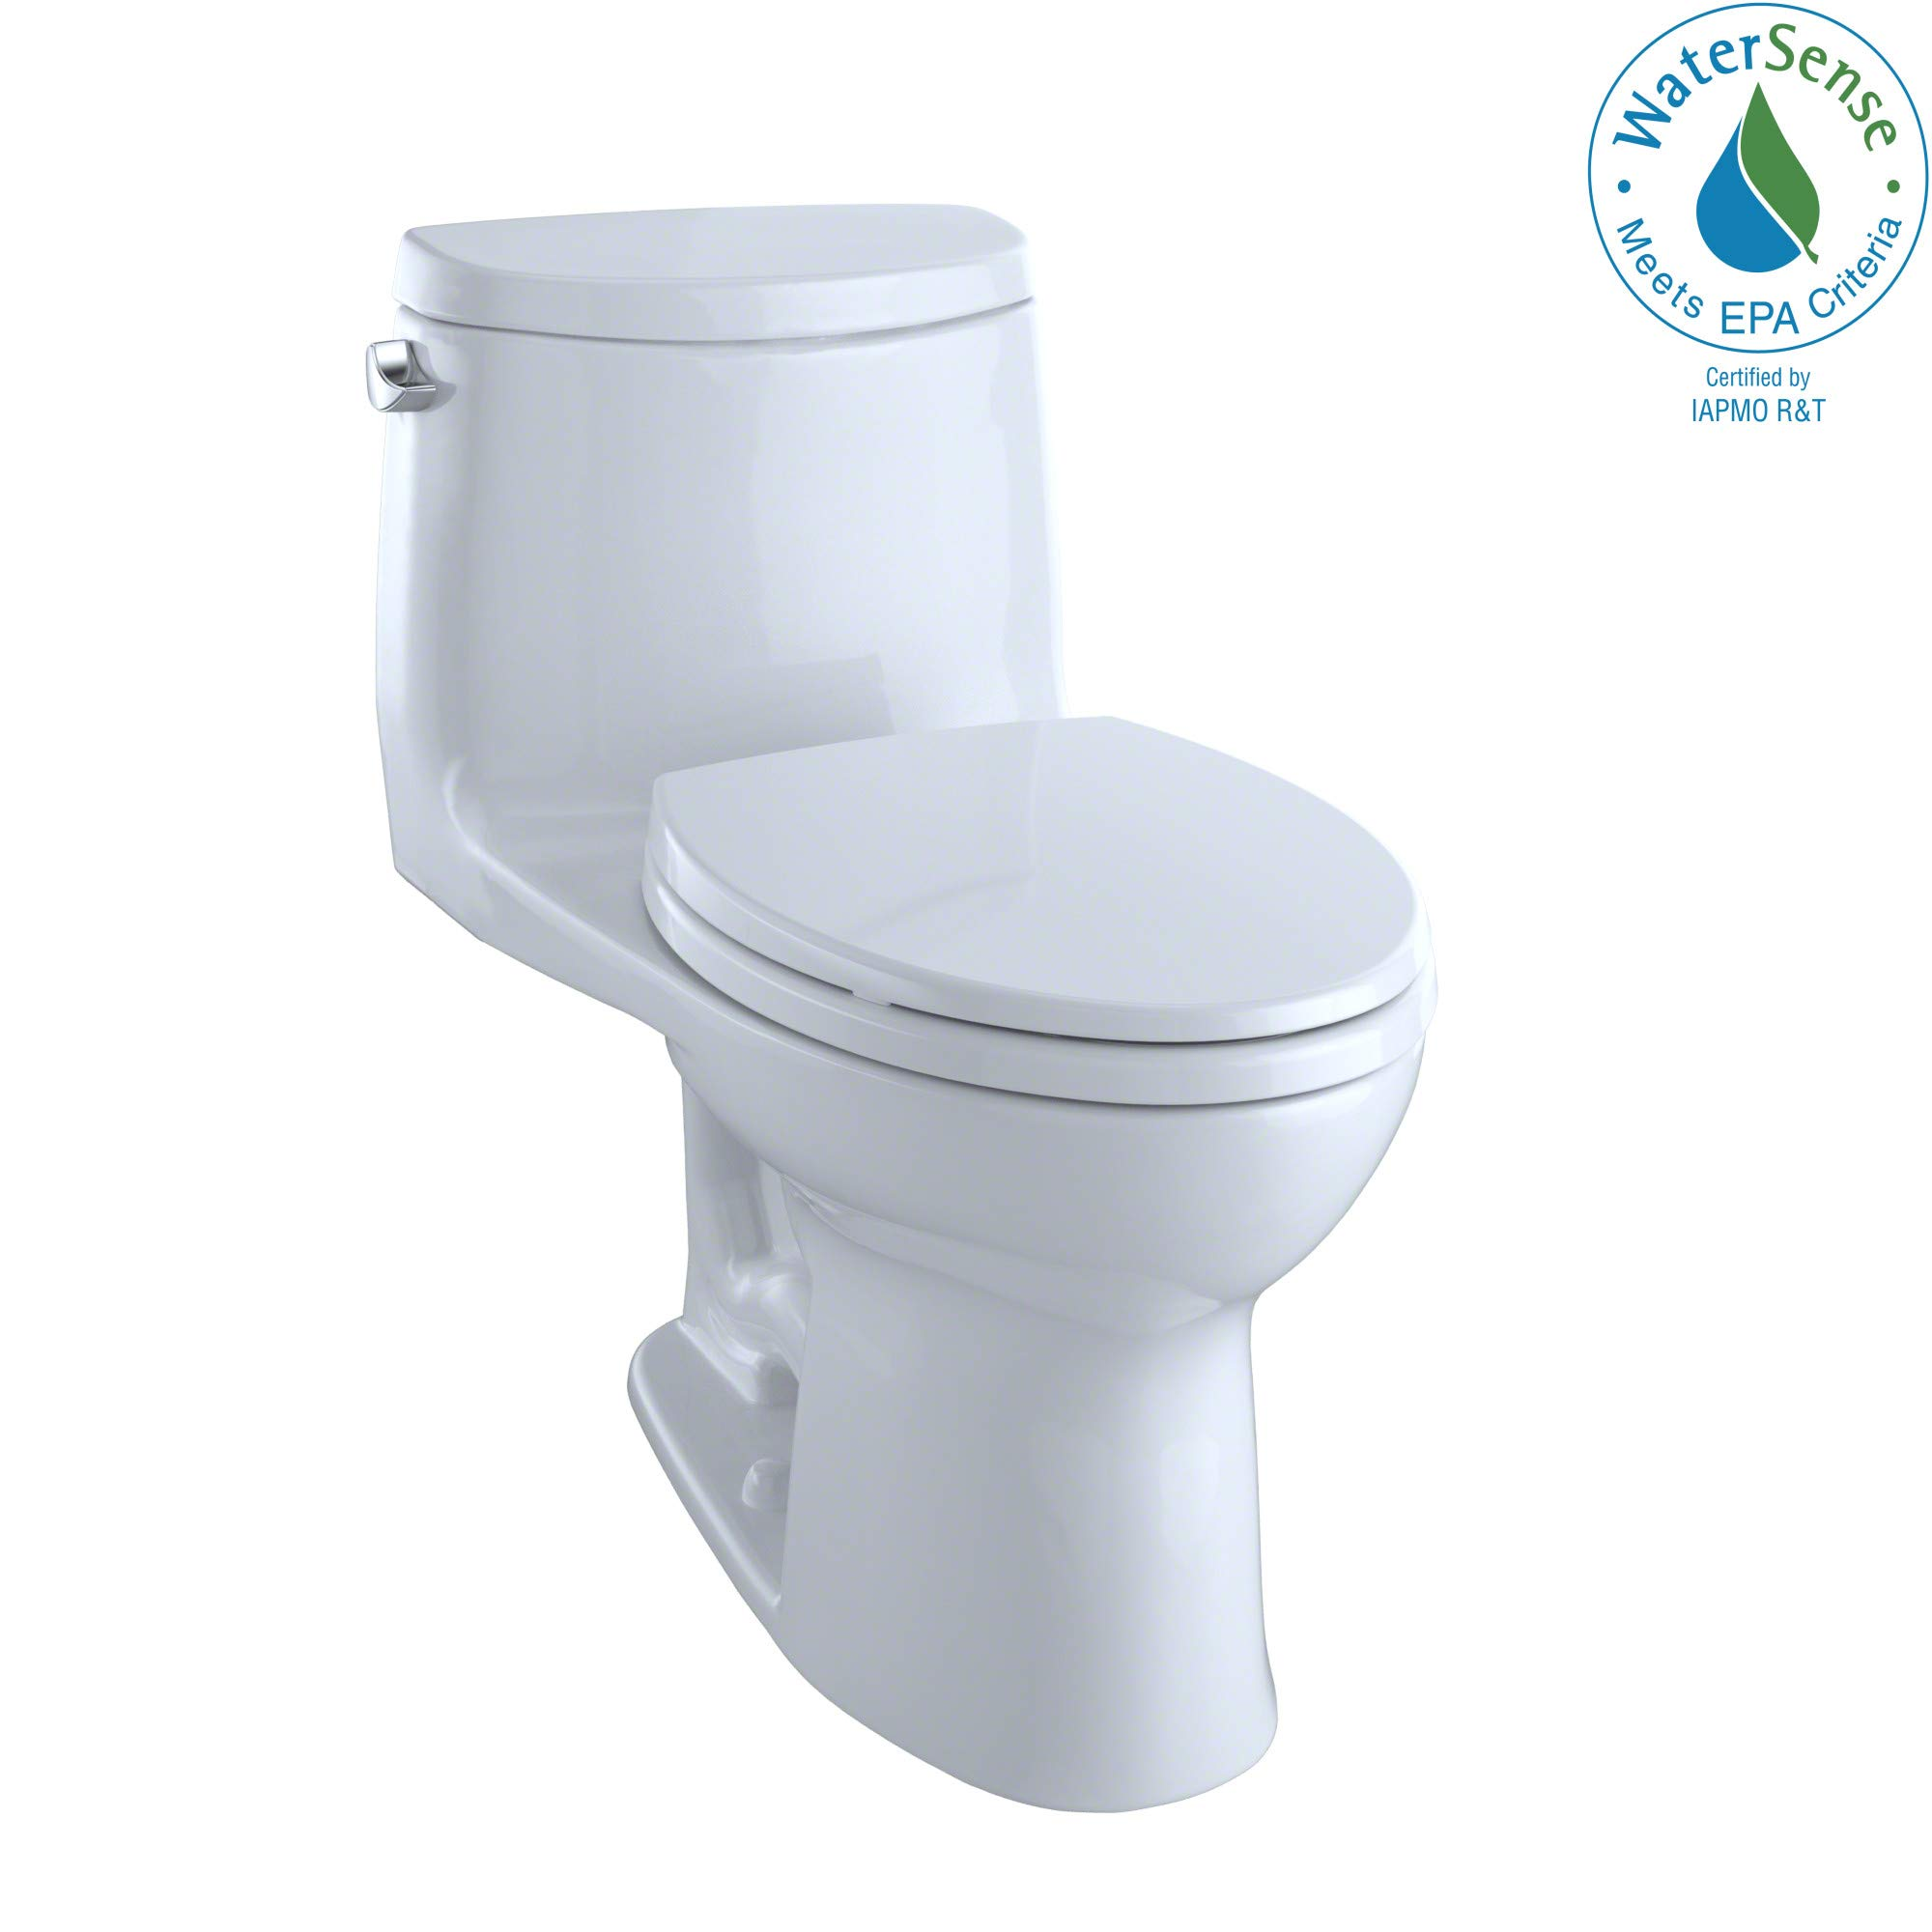 Toto MS604114CEFG#01 UltraMax II One-Piece Elongated 1.28 GPF Universal Height Toilet with CEFIONTECT, Cotton White by TOTO